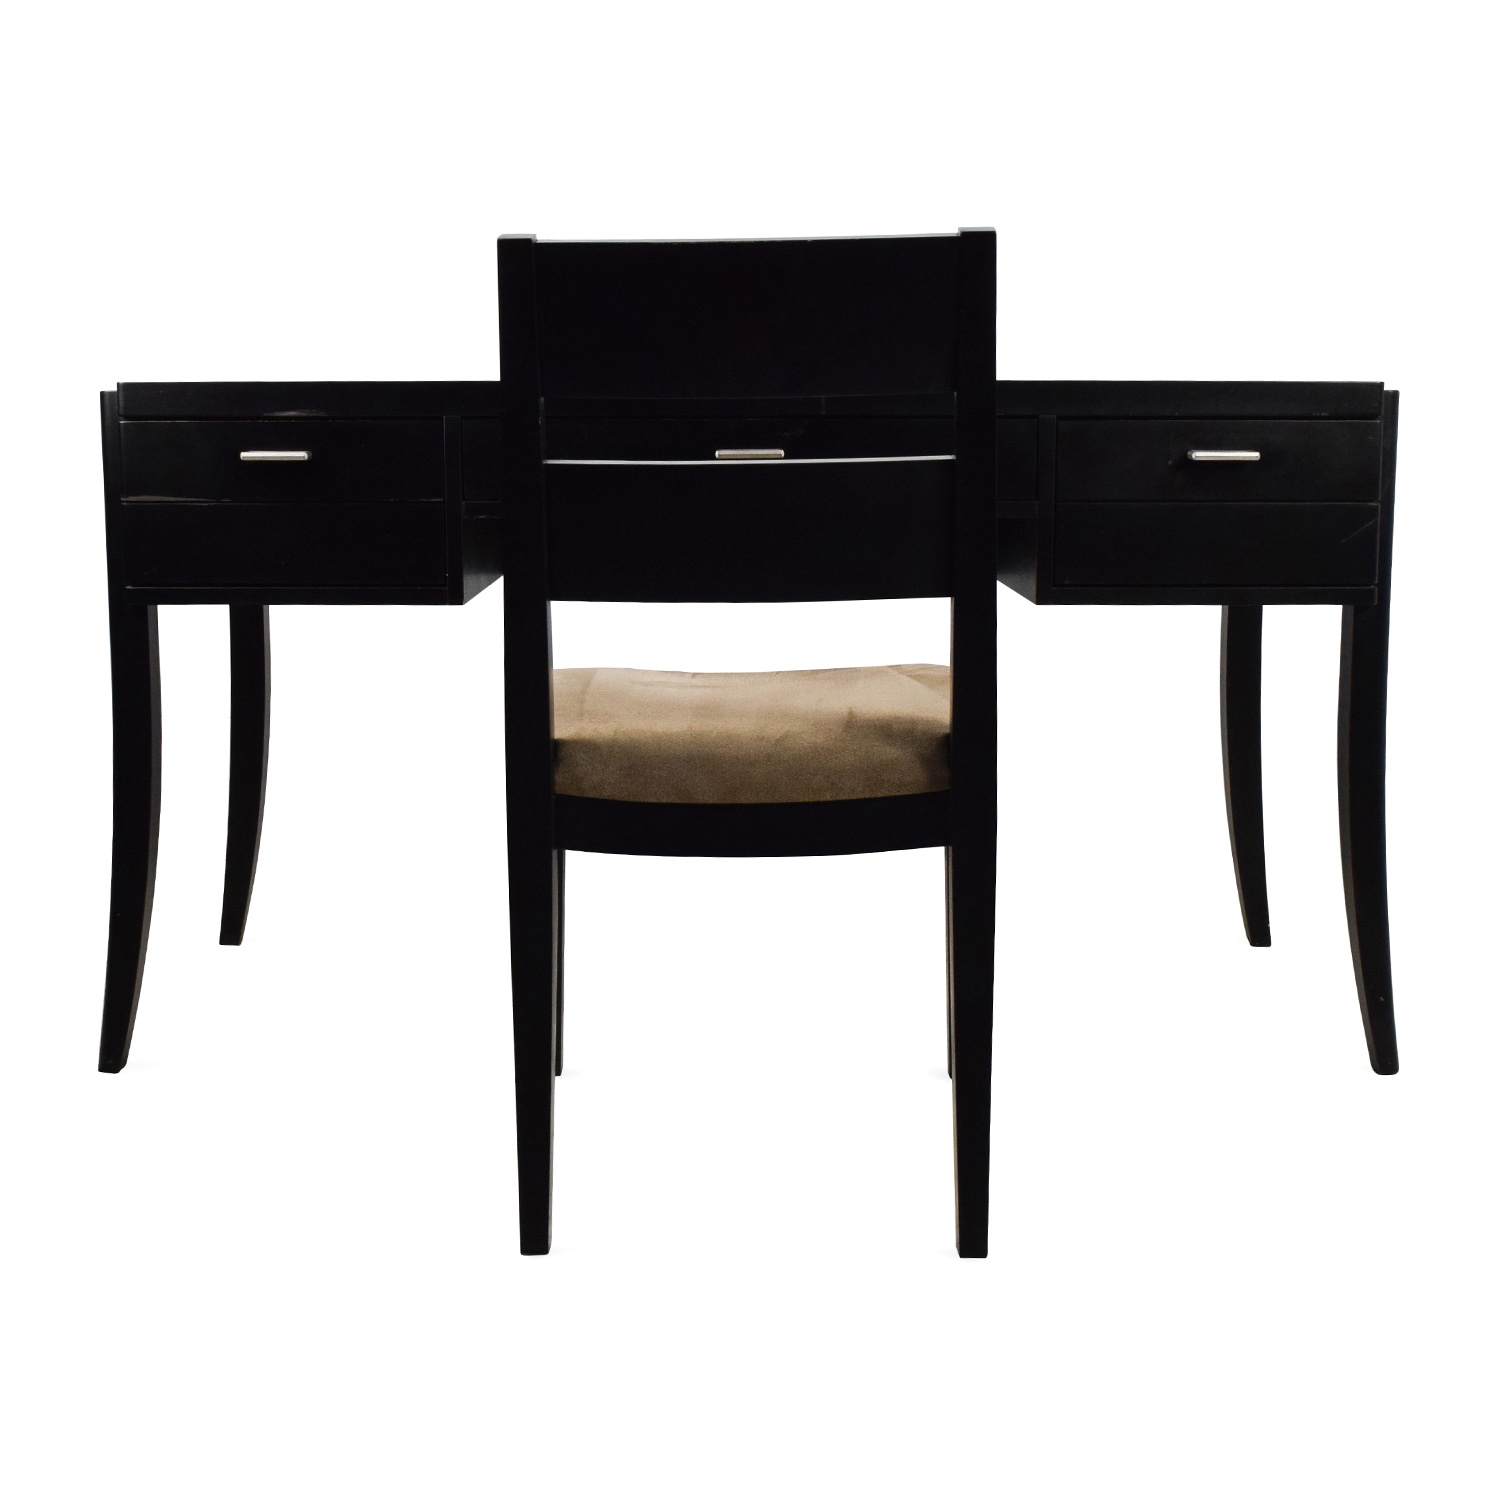 Crate & Barrel Crate & Barrel Black Wood Desk and Chair nj